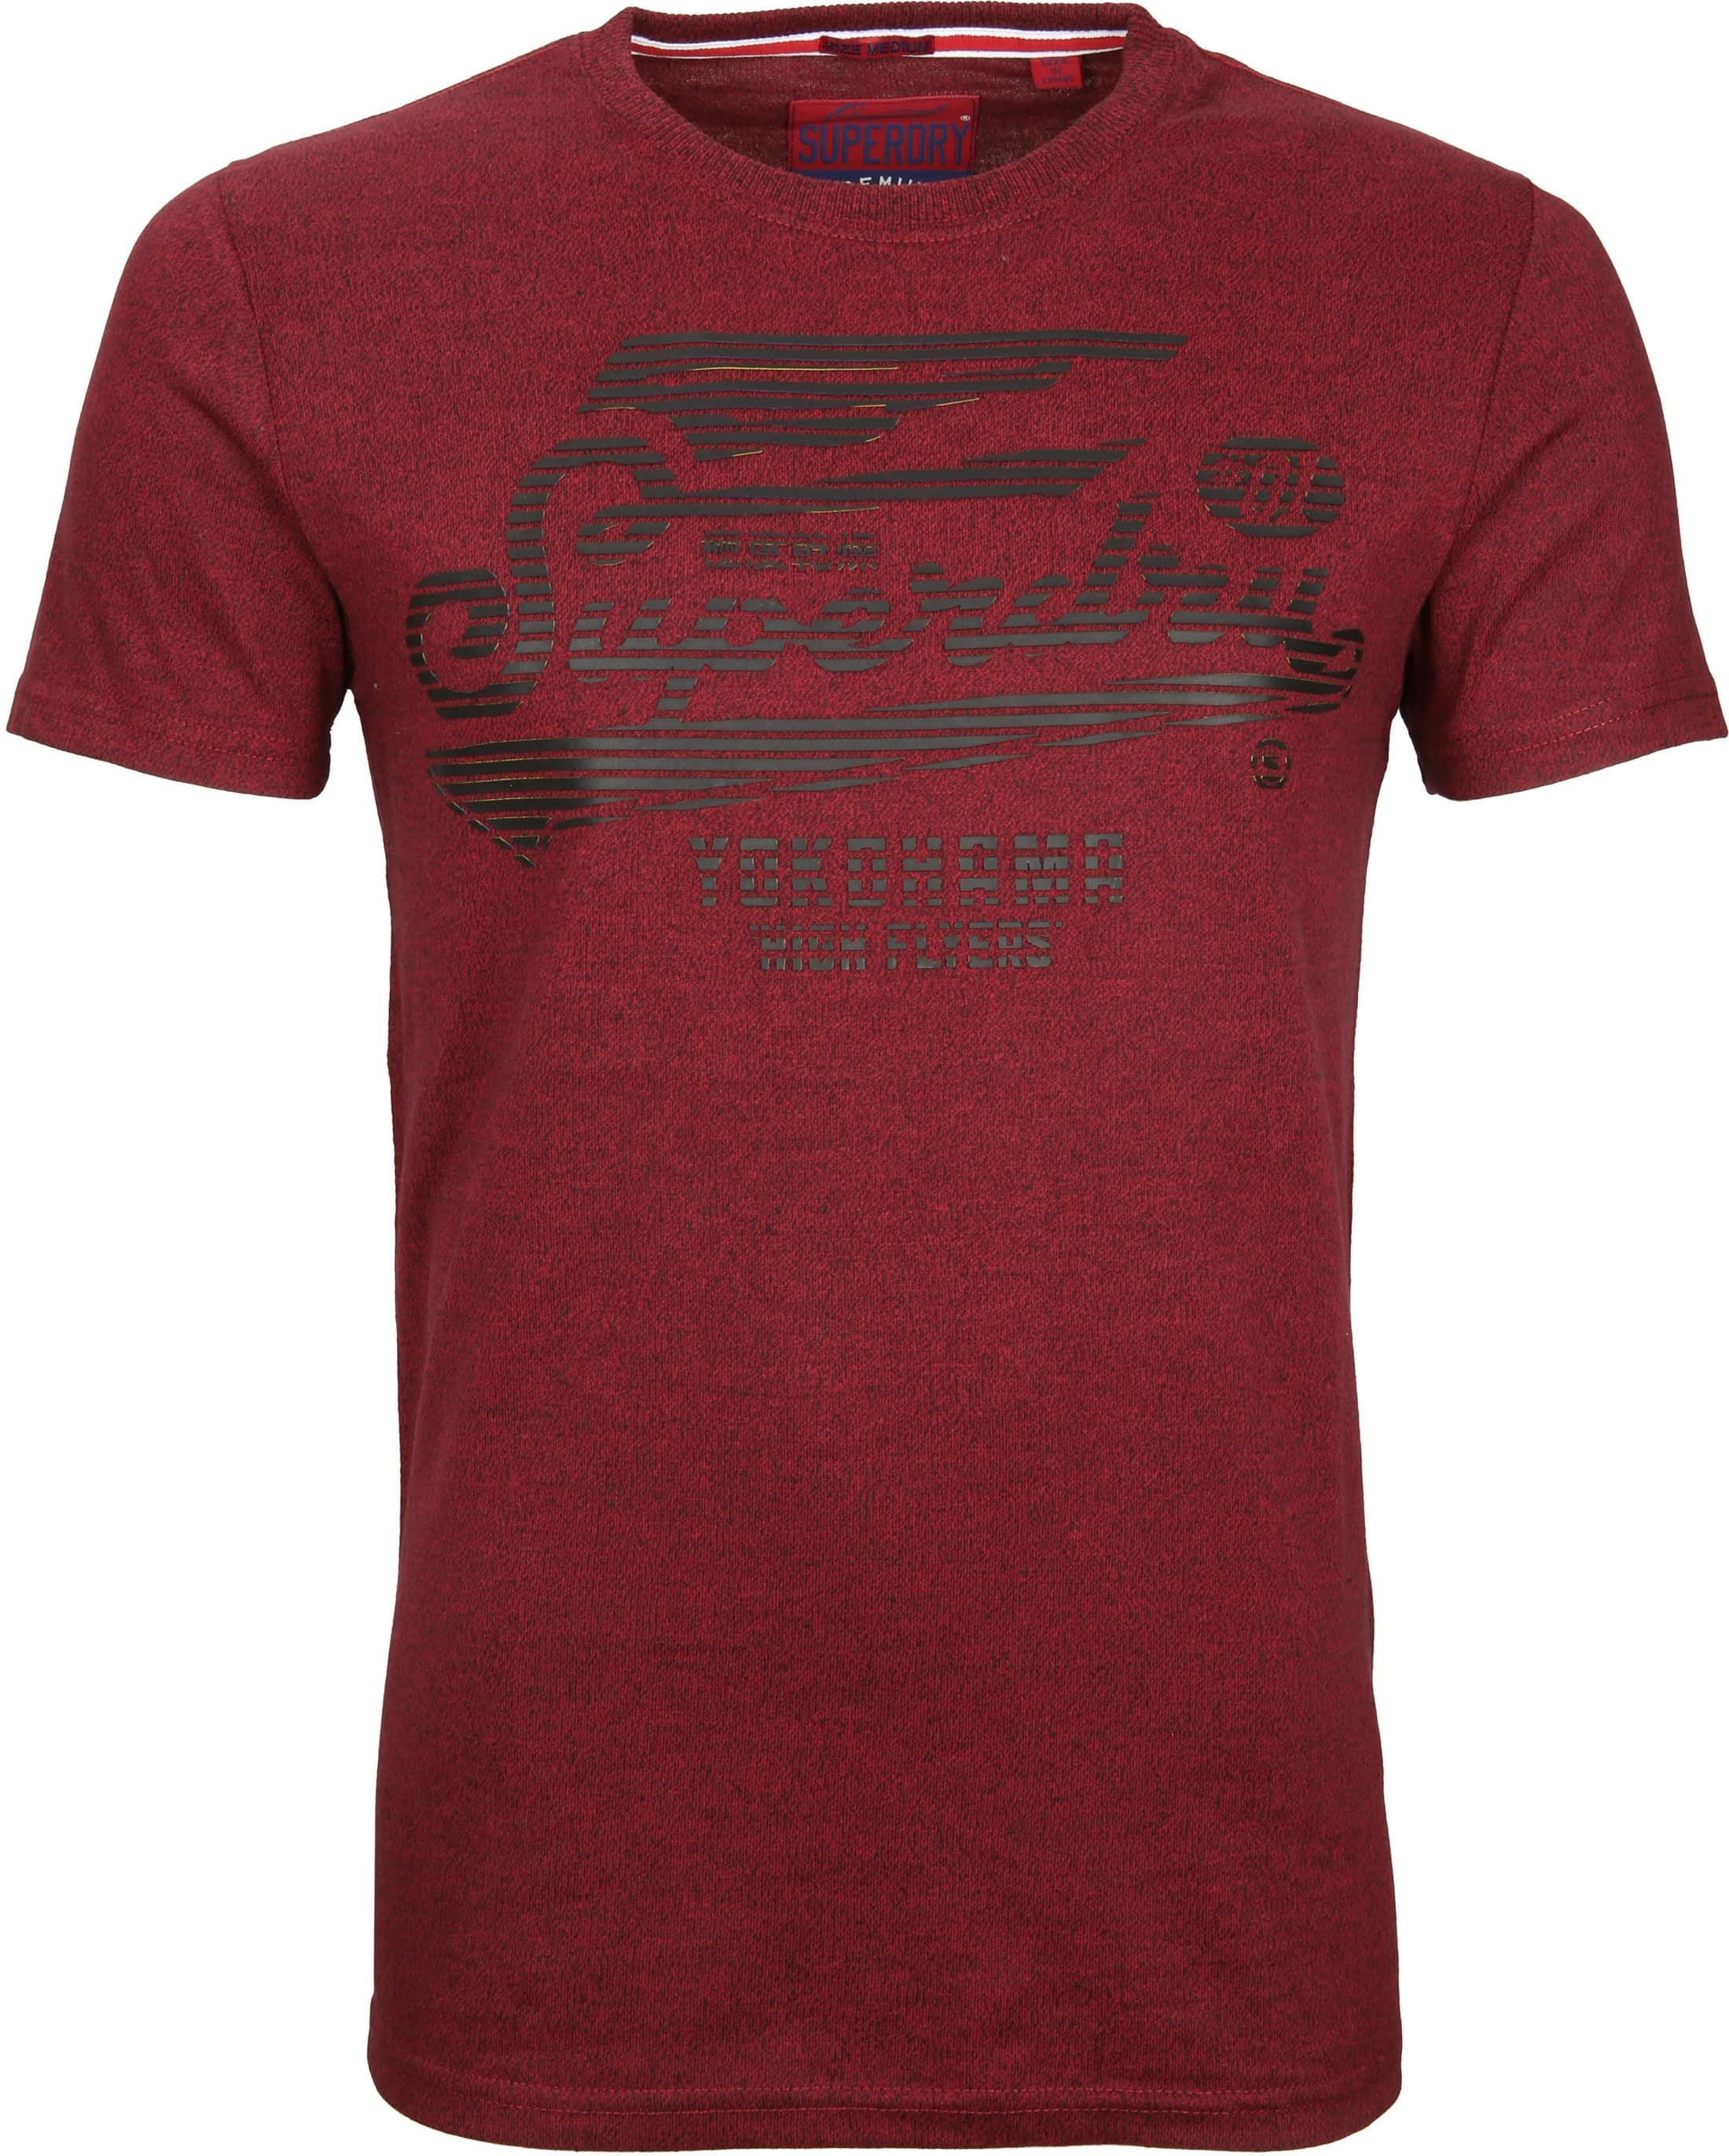 2438e578e0a Superdry T-Shirt Flyers Bordeaux M10303AR online bestellen | Suitable